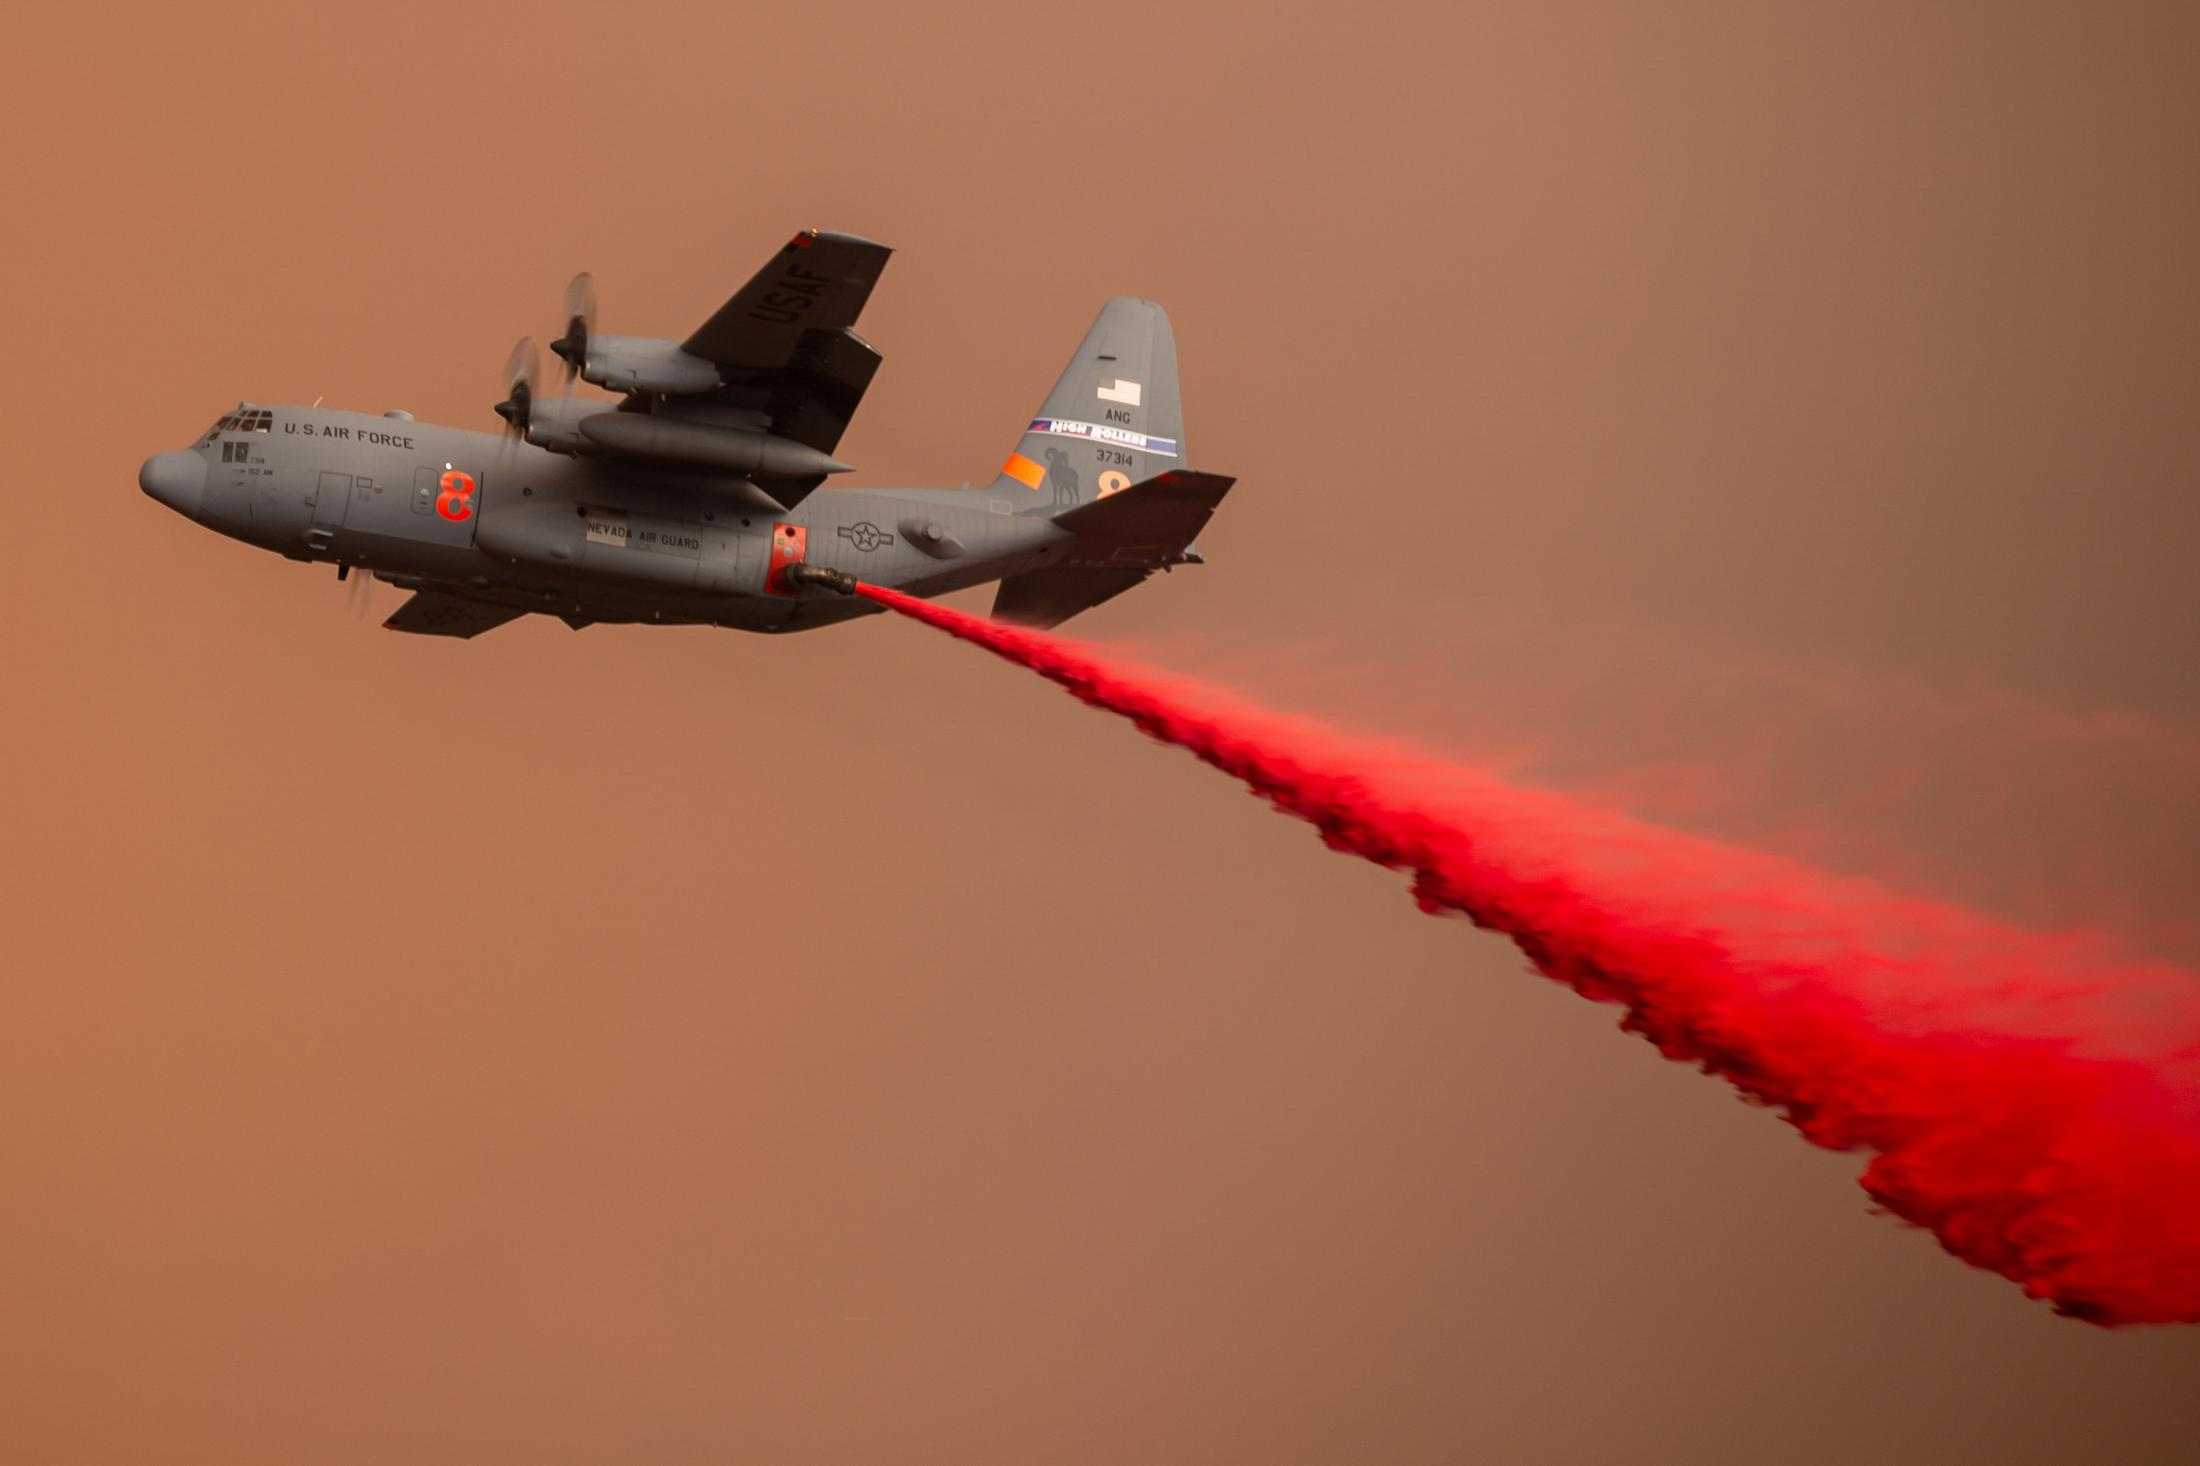 An Air Force C-130 plane drops fire retardant on houses to help protect them from the incoming blaze.